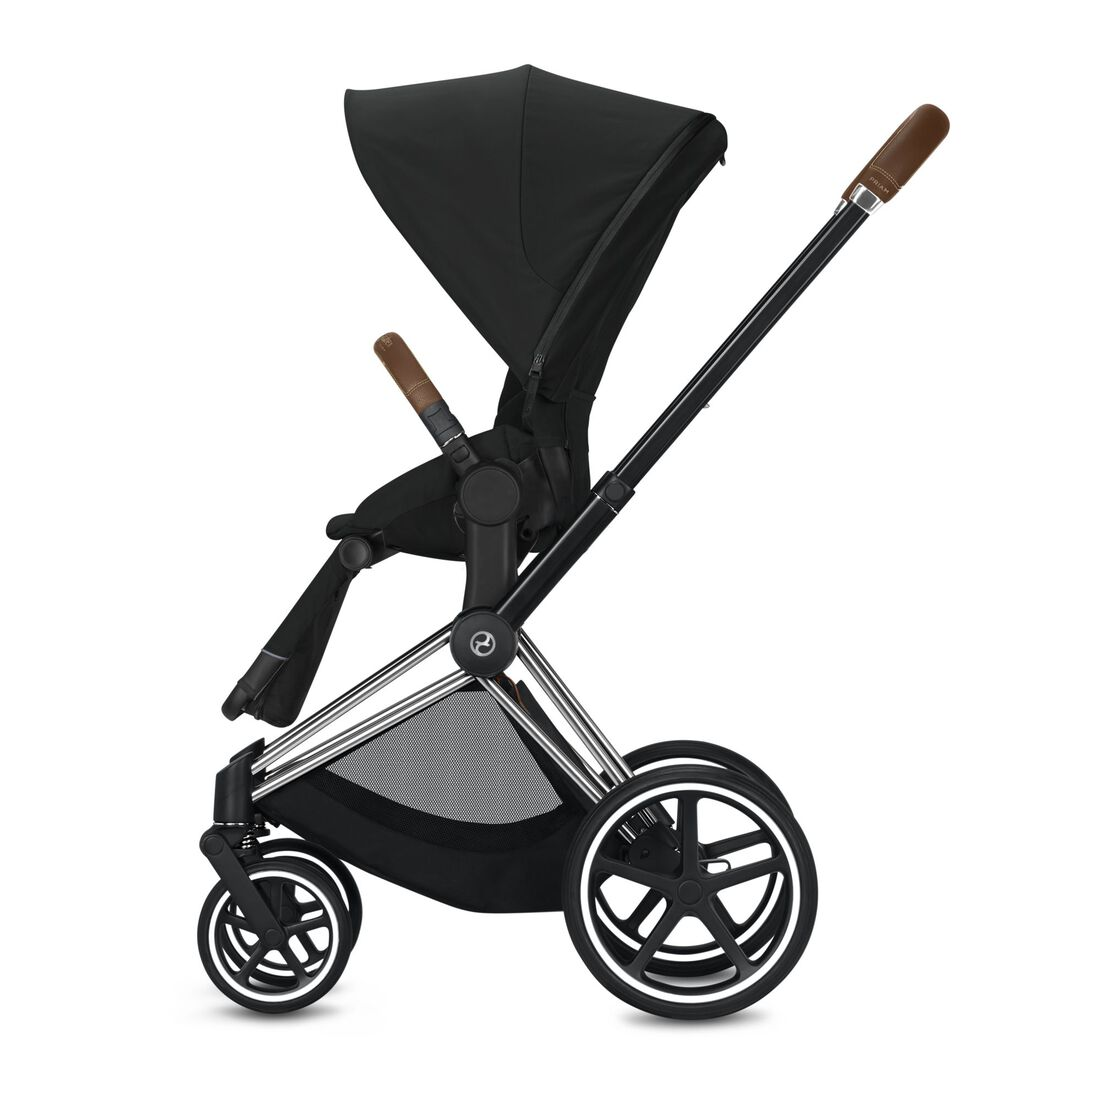 CYBEX Priam Frame - Chrome With Brown Details in Chrome With Brown Details large image number 3